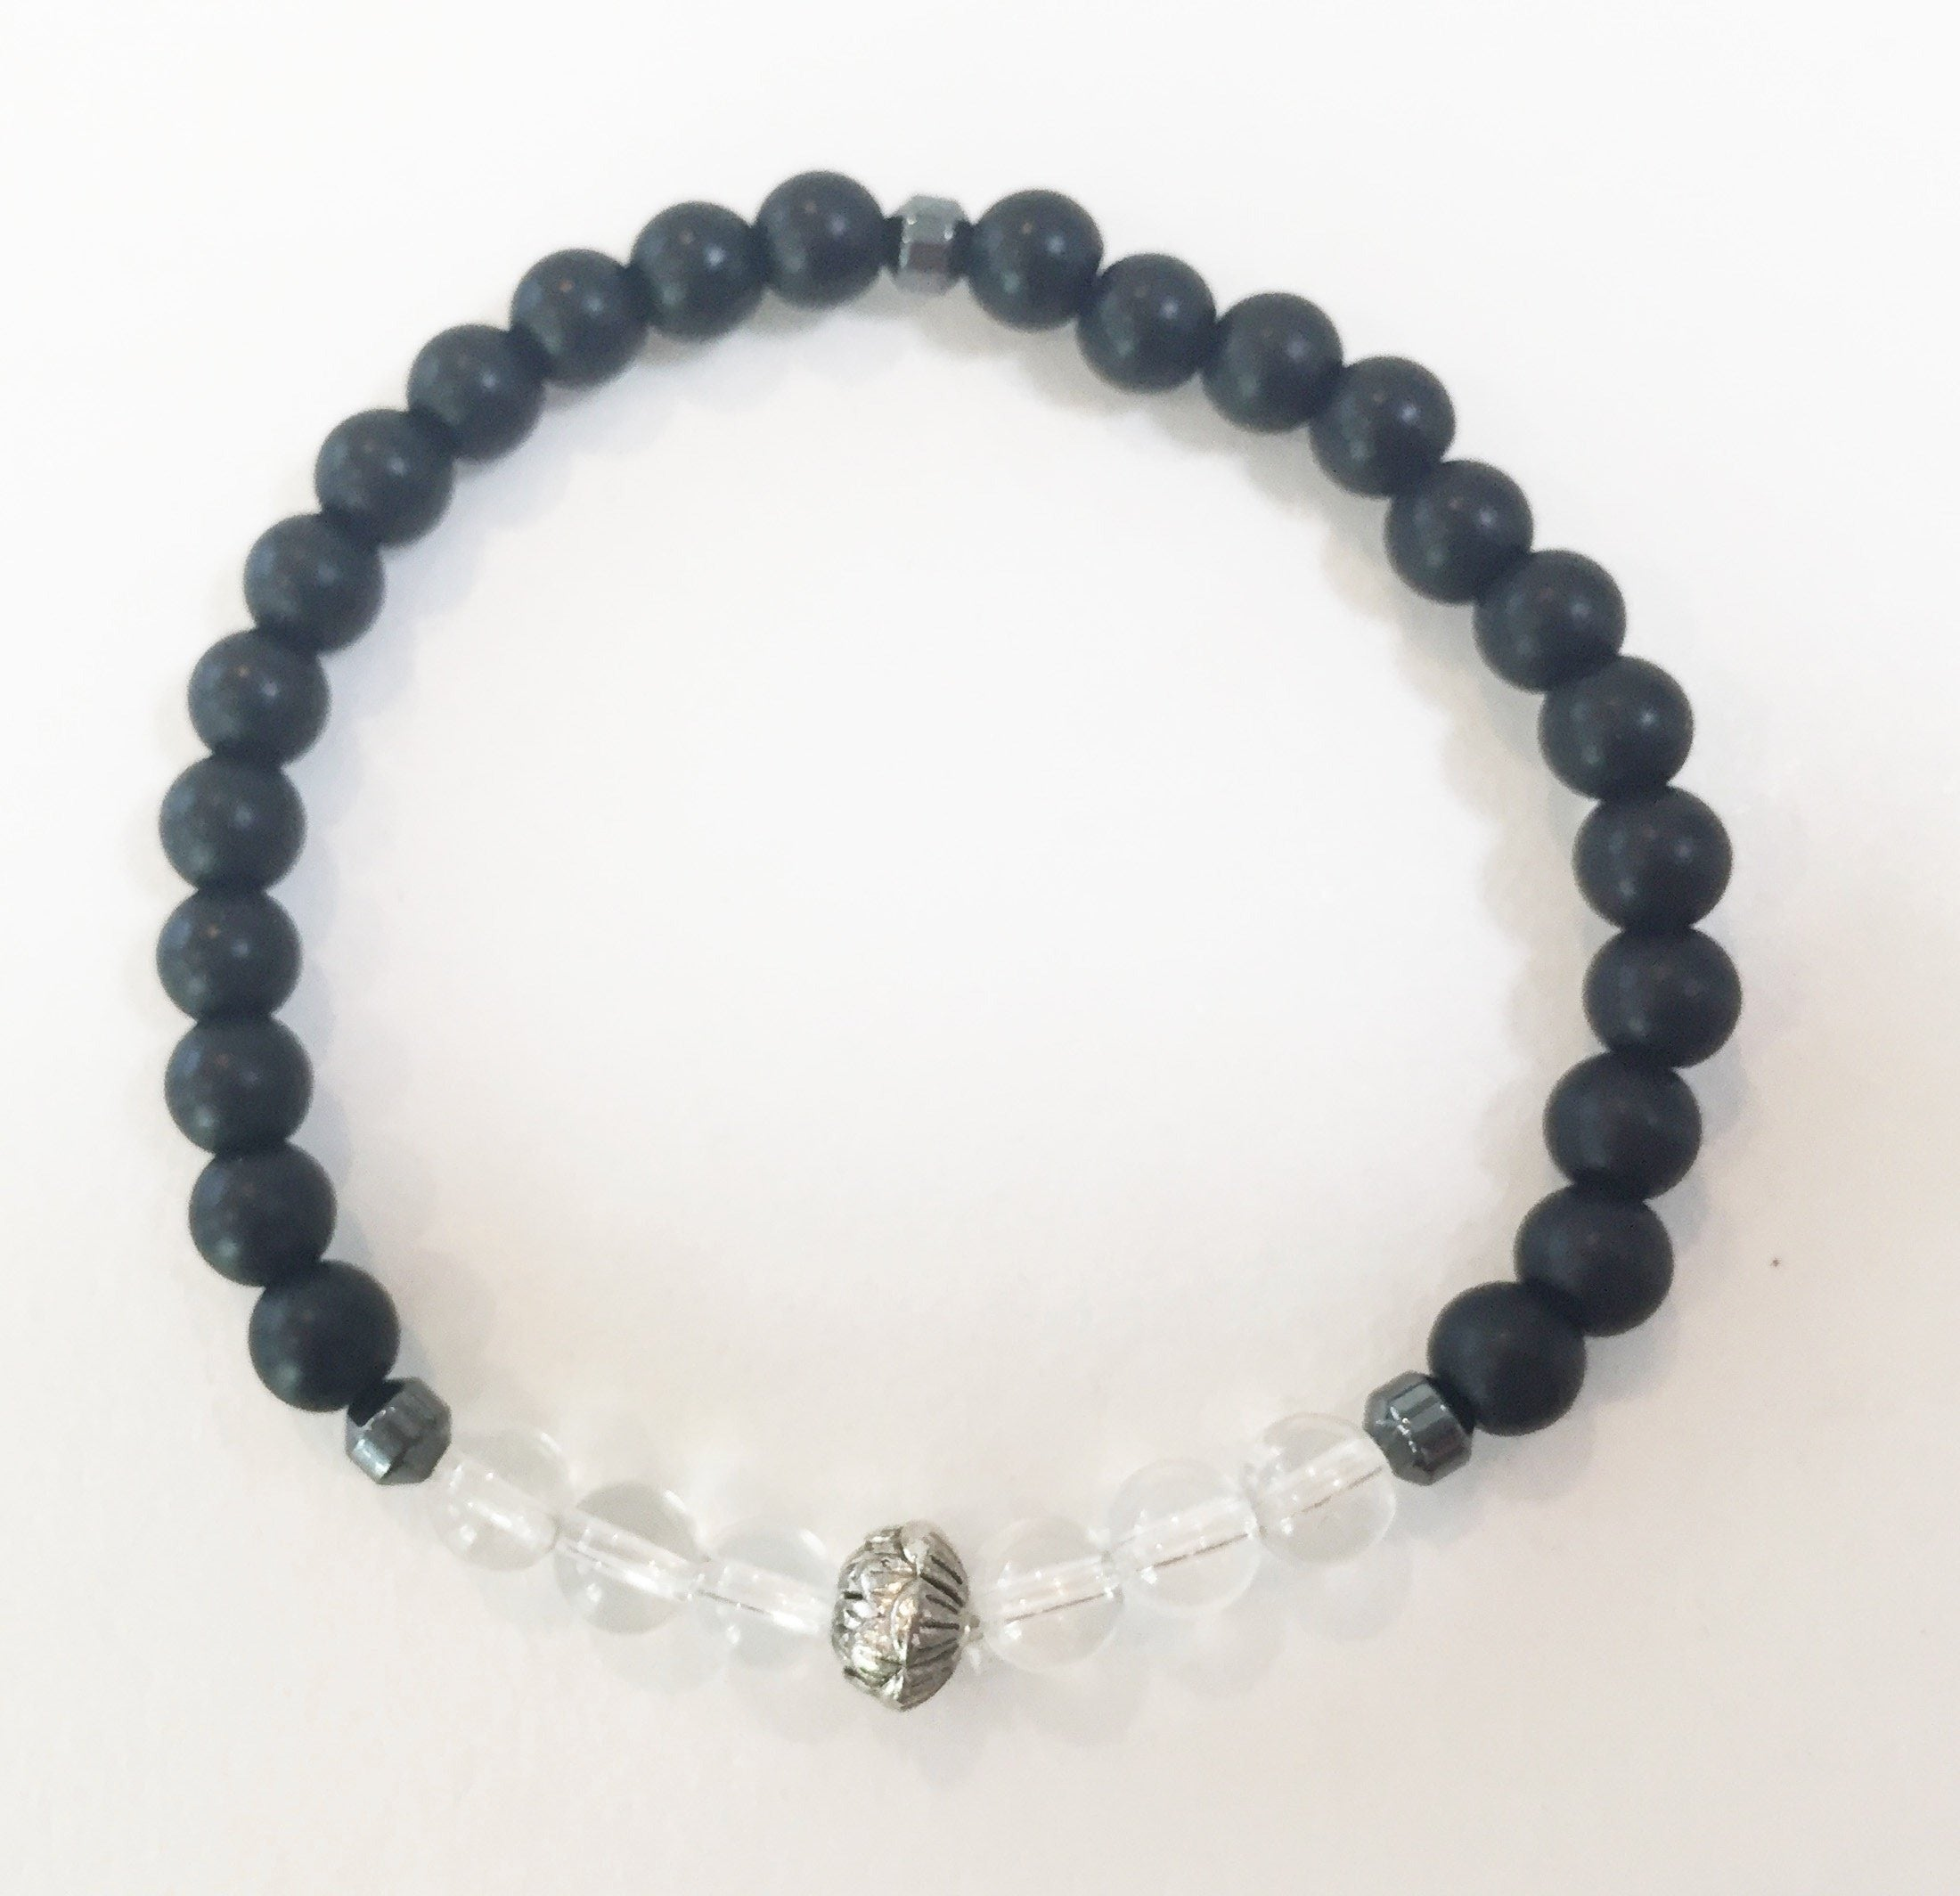 6mm Matte Obsidian & Quartz Crystal Stretch Bracelet with Lotus Flower